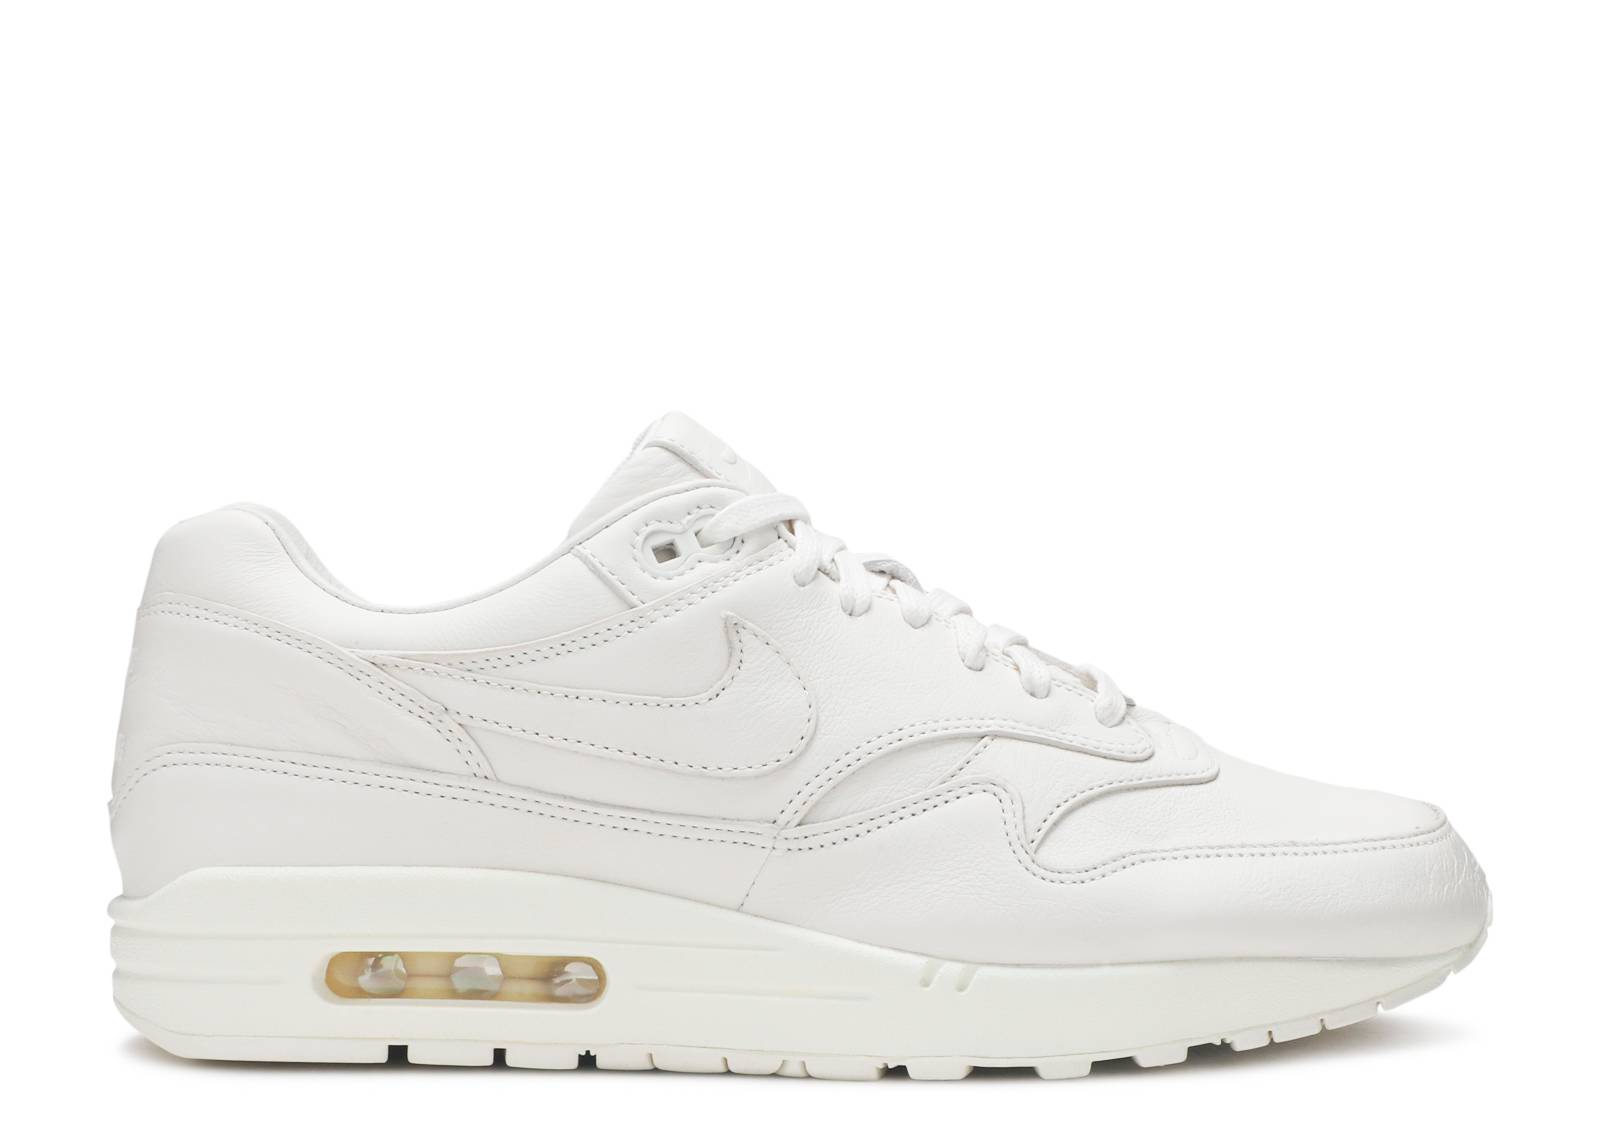 nike air max 1 pinnacle sail